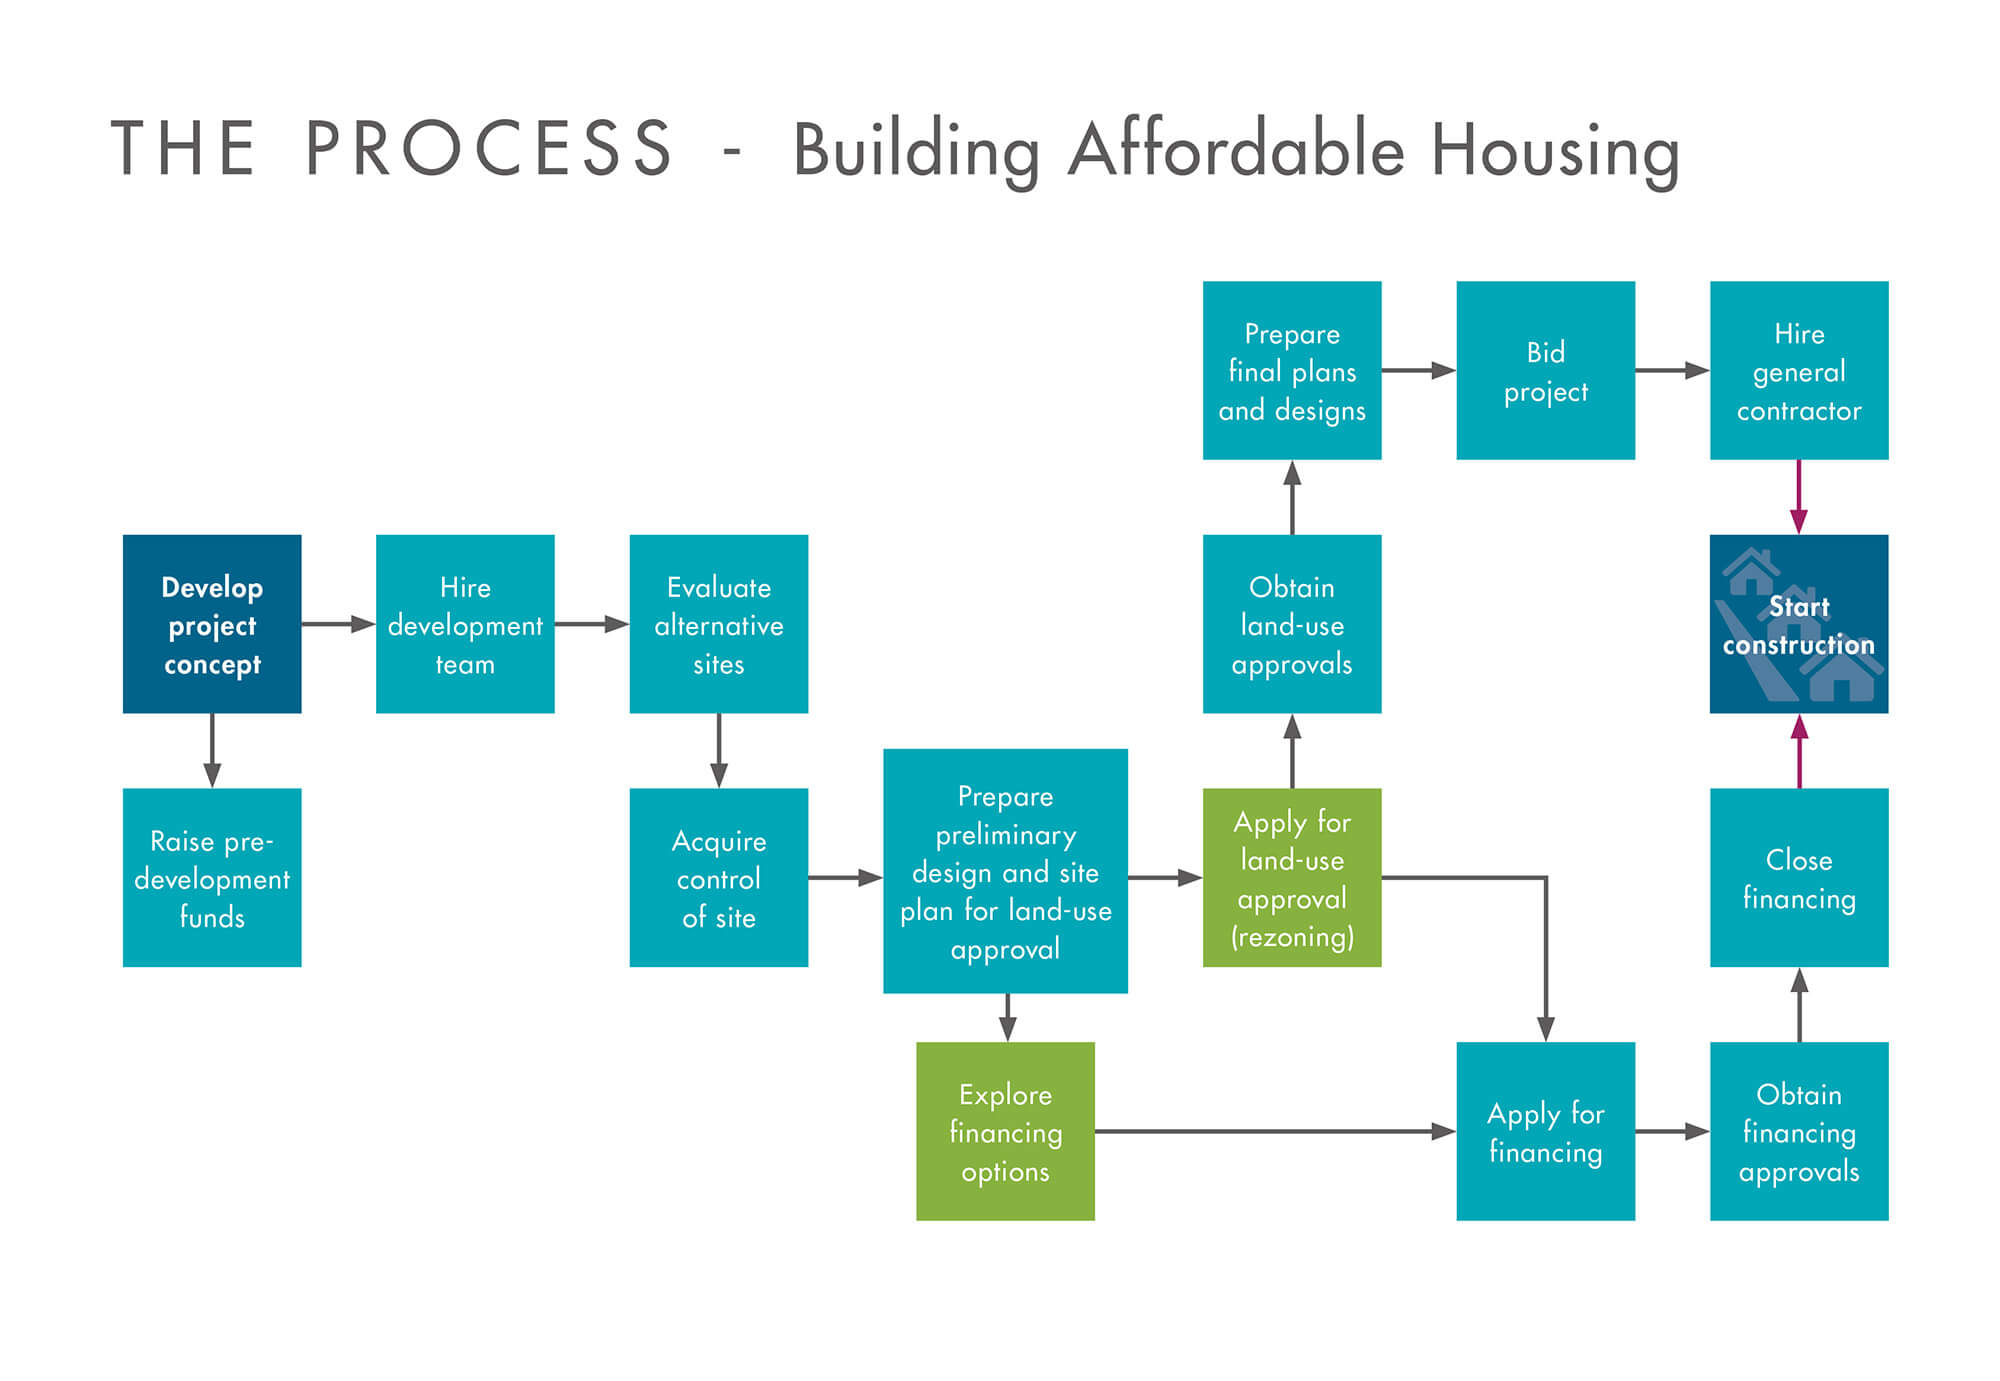 An infographic with squares and arrows that step through The Process of Building Affordable Housing. Inside each square is text. The flow goes like this: First, develop project concept and raise funds. When funds exist then hire development team, evaluate alternative sites, acquire control of a site, prepare preliminary design and site plan for land-use approval. The next major steps that happen at the same time, are exploring financing options, and seeking land-use approval (rezoning). Applications for the financing, followed by approvals, and then closing financing; alongwith, preparing final plans and designs, bidding the project and hiring a general contractor, must all occur before construction can begin.